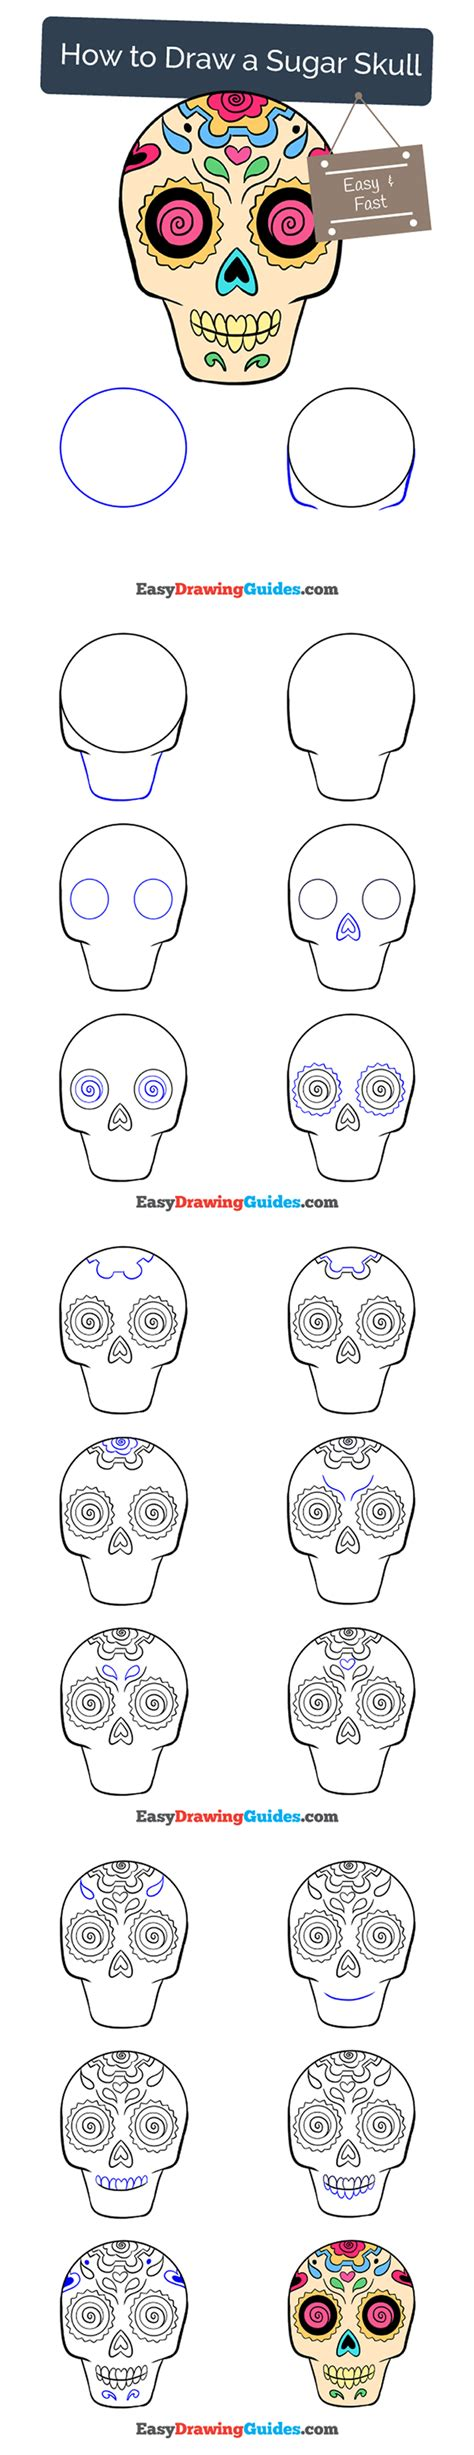 easy step by step how to draw skull and snake pics learn how to draw with easy step by step guides sugar